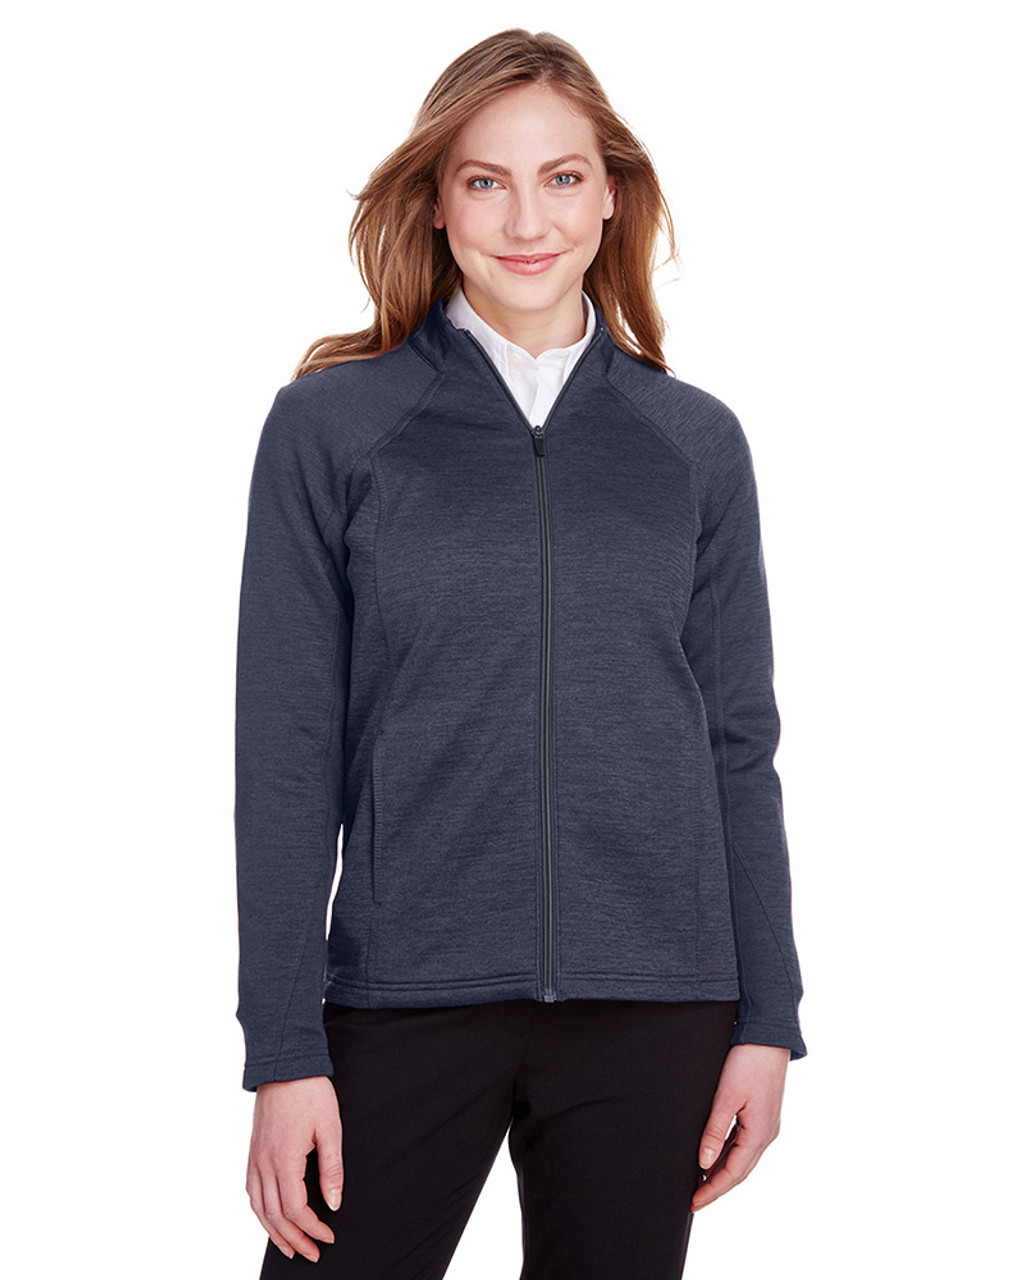 Classic Navy Heather/Carbon - NE712W Ash City - North End Ladies Flux 2.0 Full-Zip Jacket   Blankclothing.ca